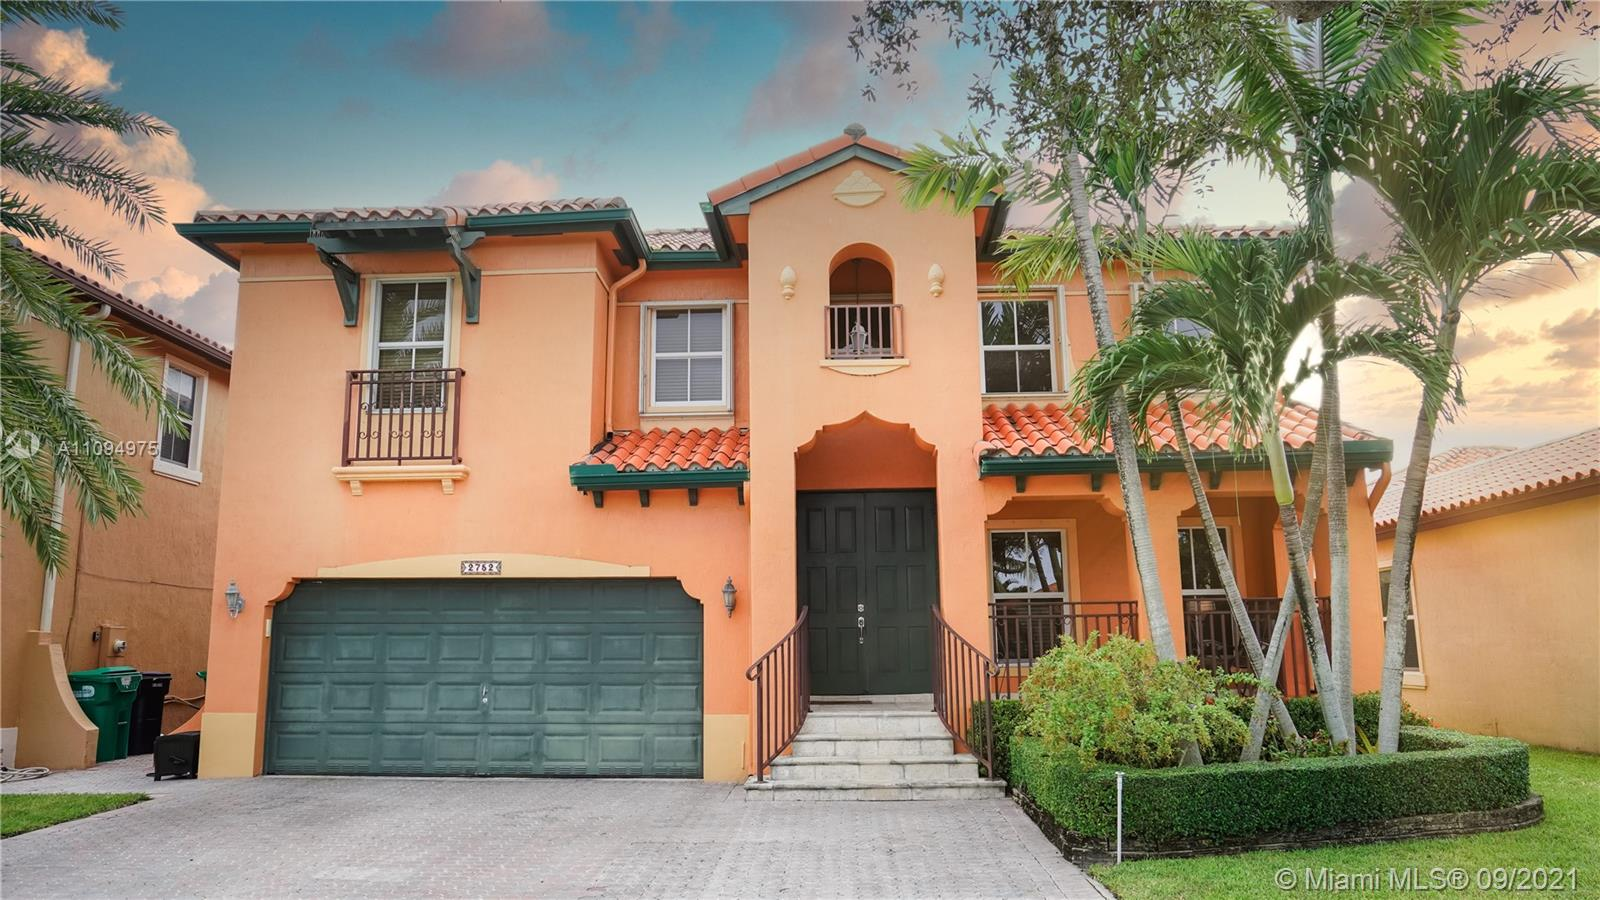 Single Family Home,For Sale,2752 SW 152nd Ct, Miami, Florida 33185,Brickell,realty,broker,condos near me